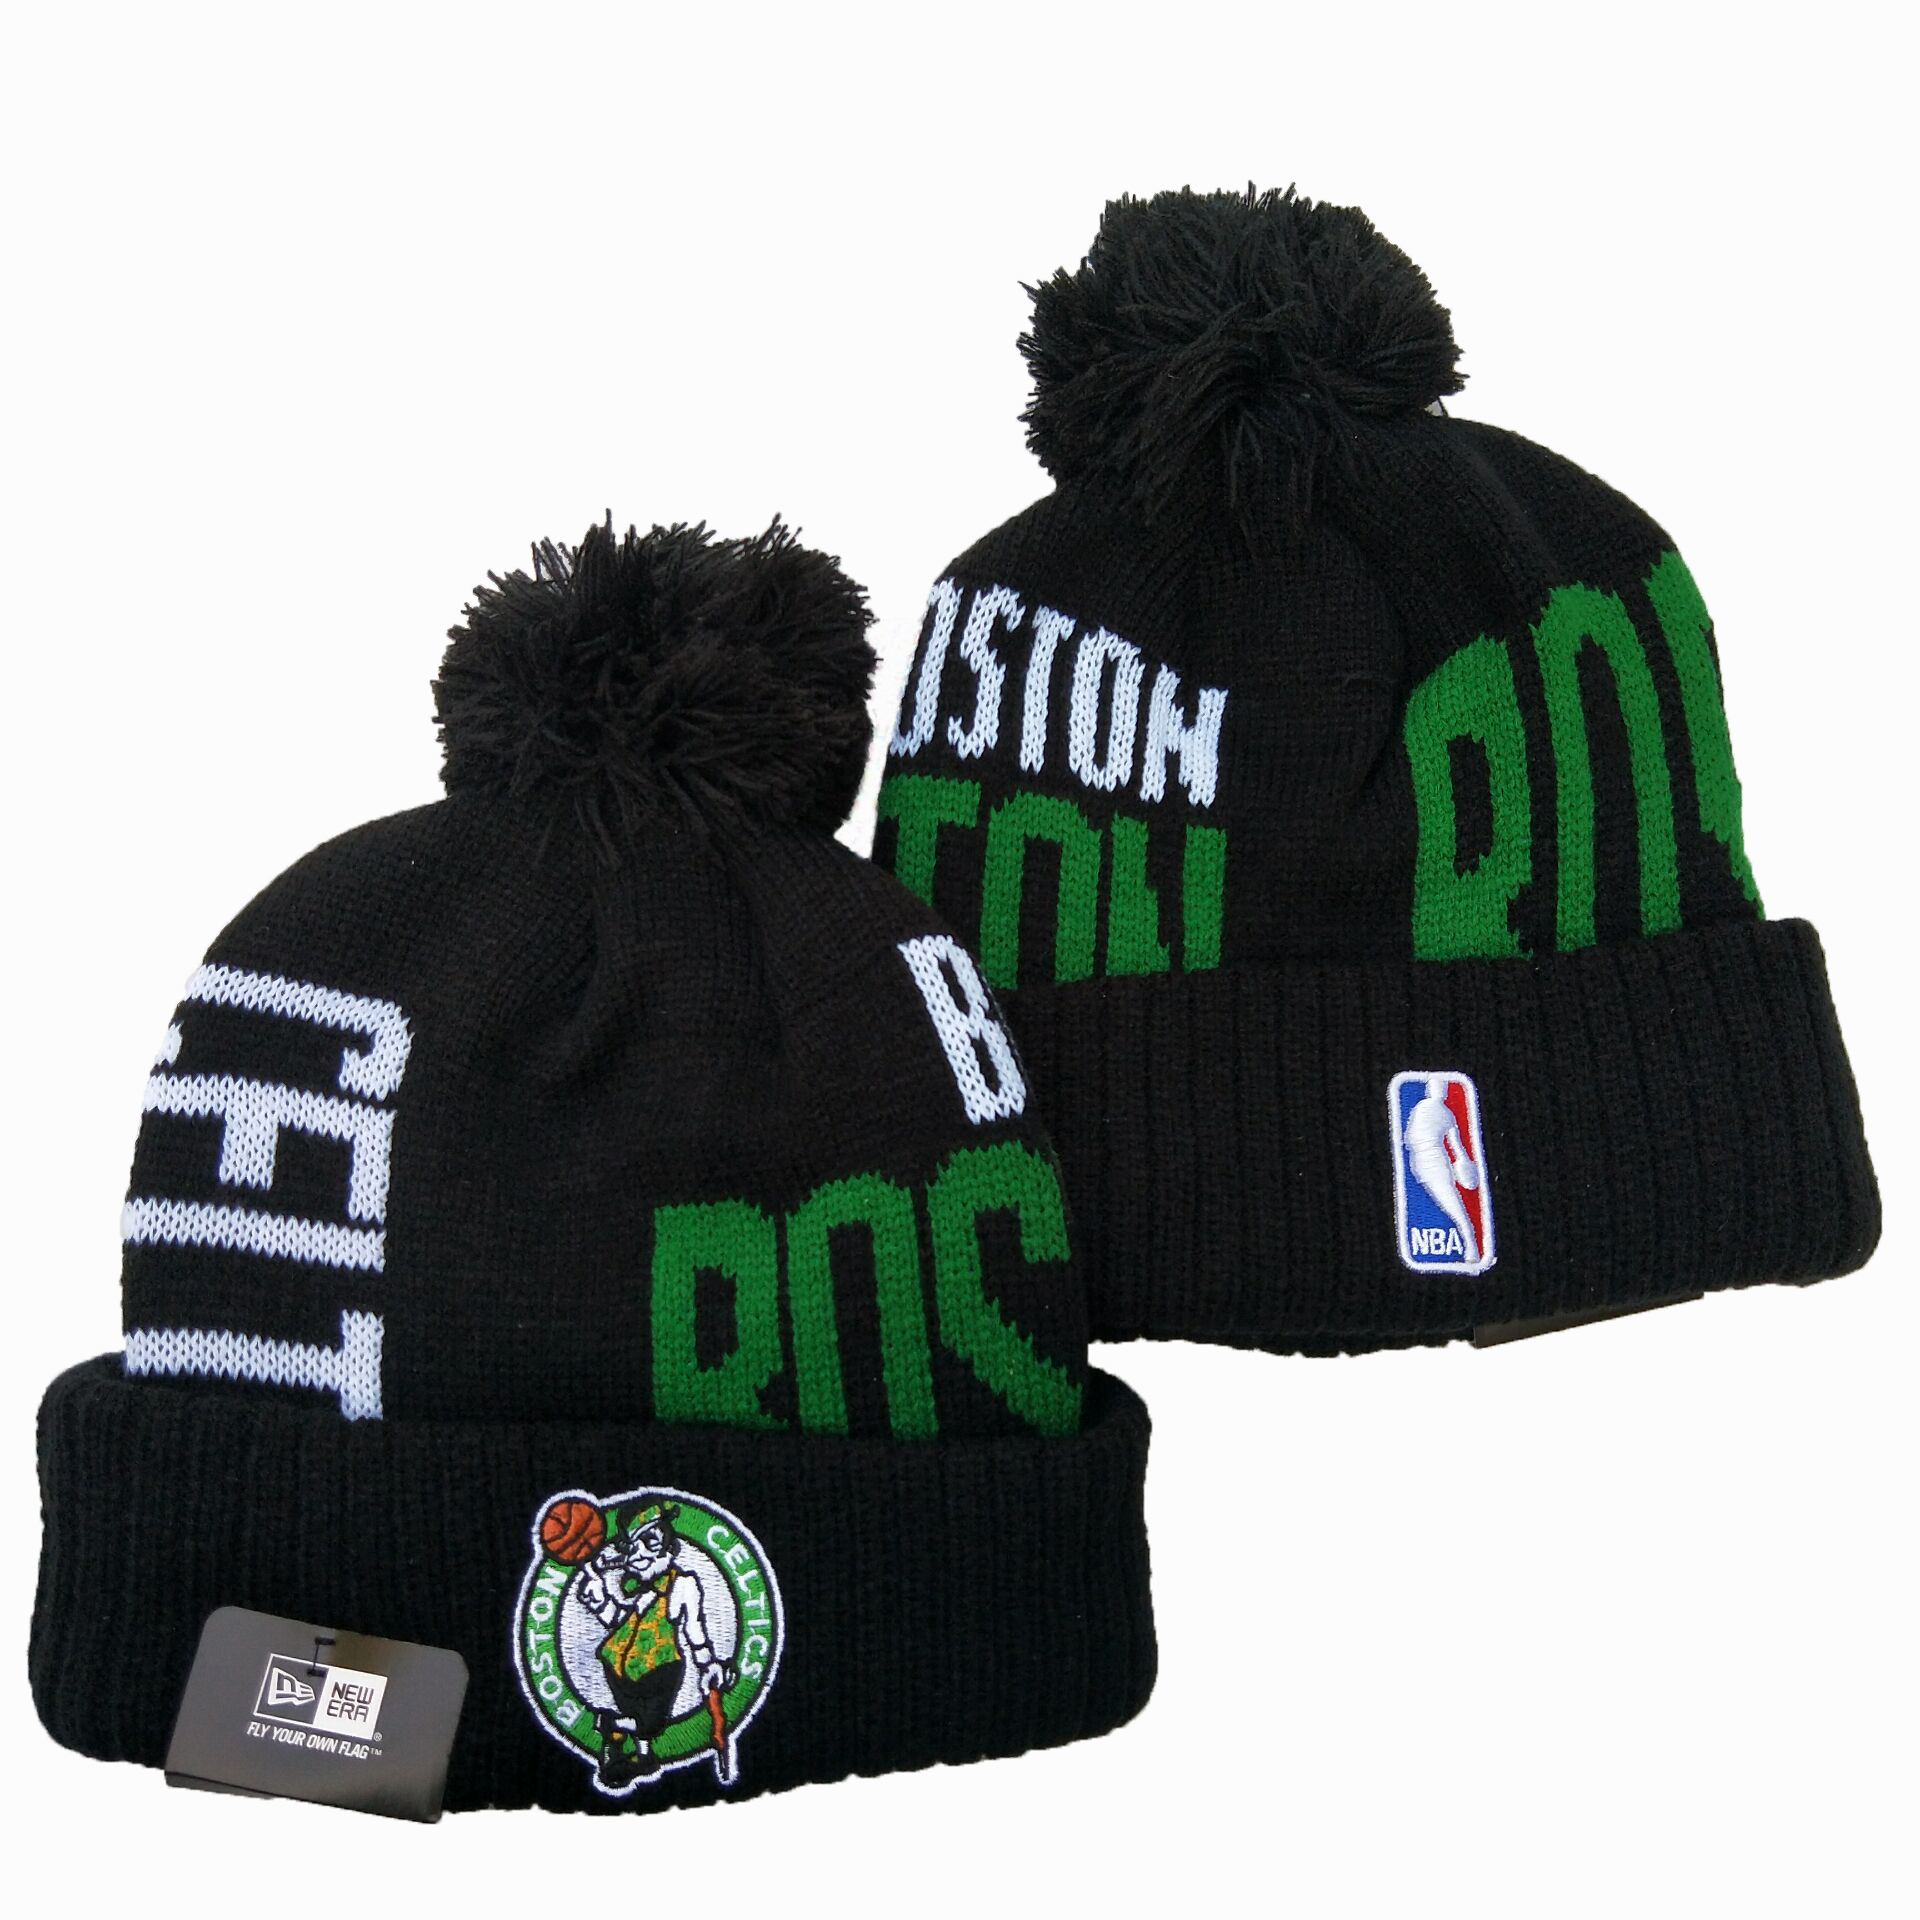 Celtics Team Logo Black Pom Knit Hat YD